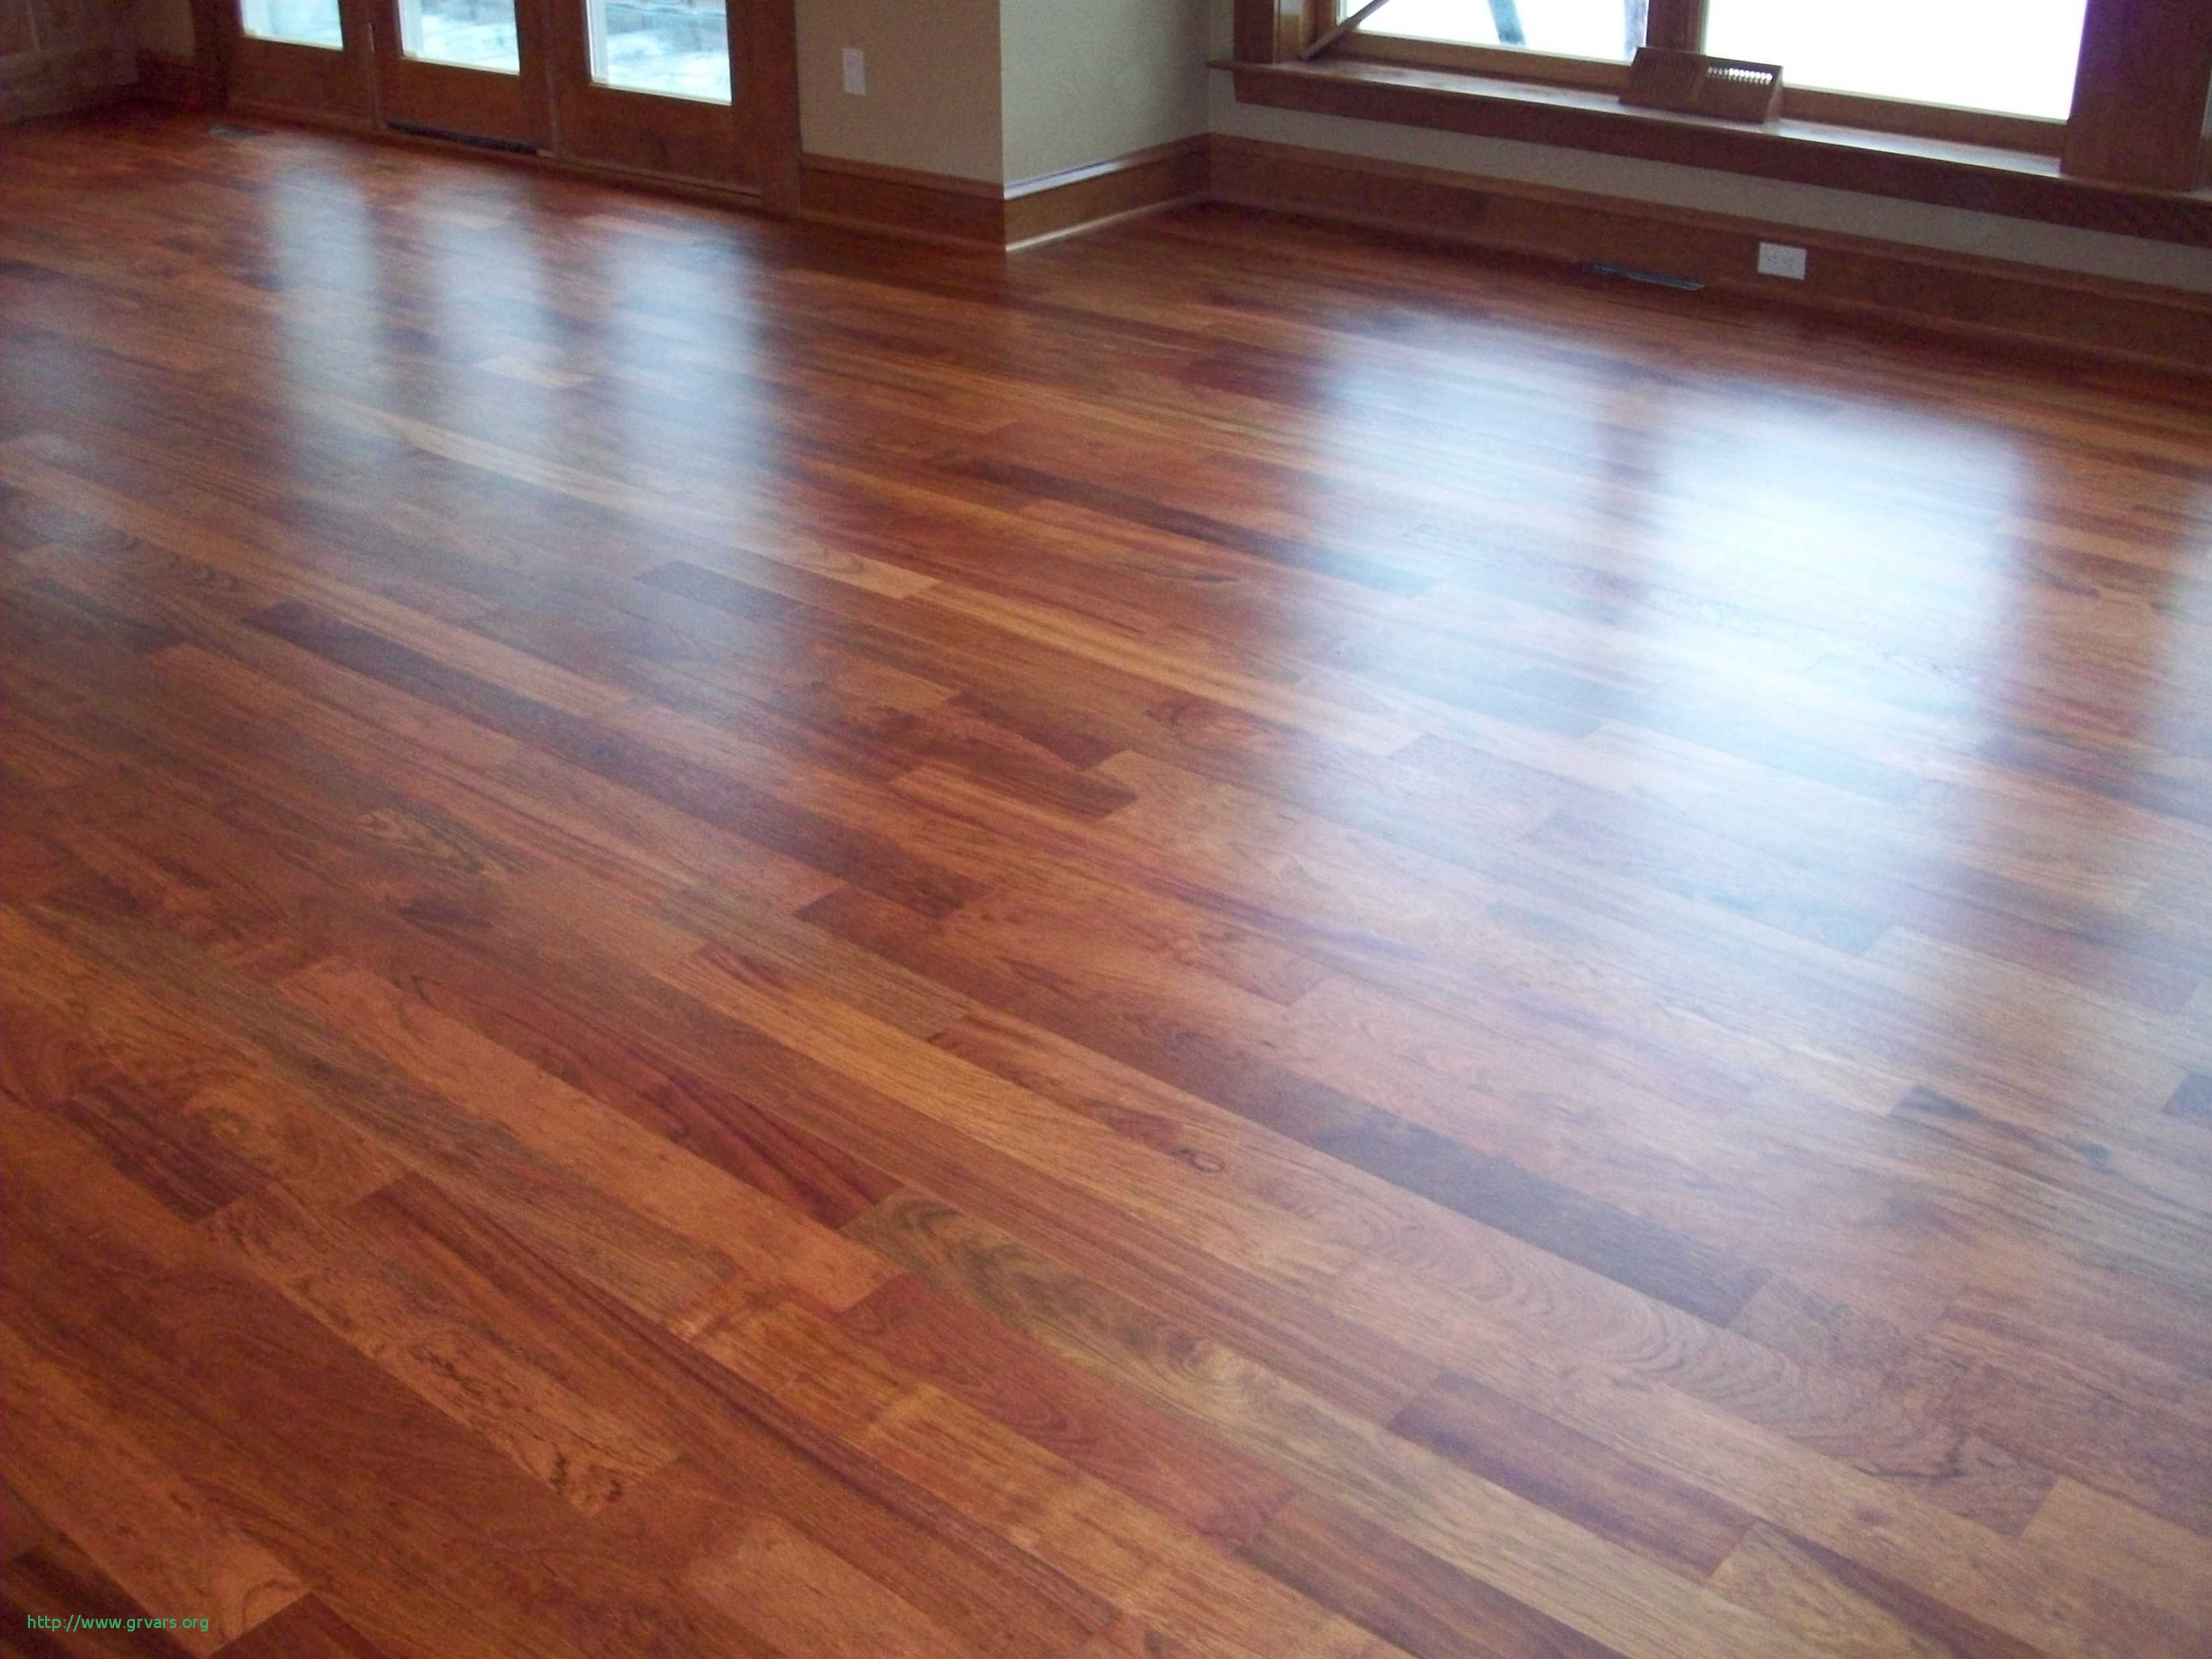 hardwood floor alternatives of 21 inspirant best prices for laminate wood flooring ideas blog pertaining to best prices for laminate wood flooring impressionnant engaging discount hardwood flooring 5 where to buy inspirational